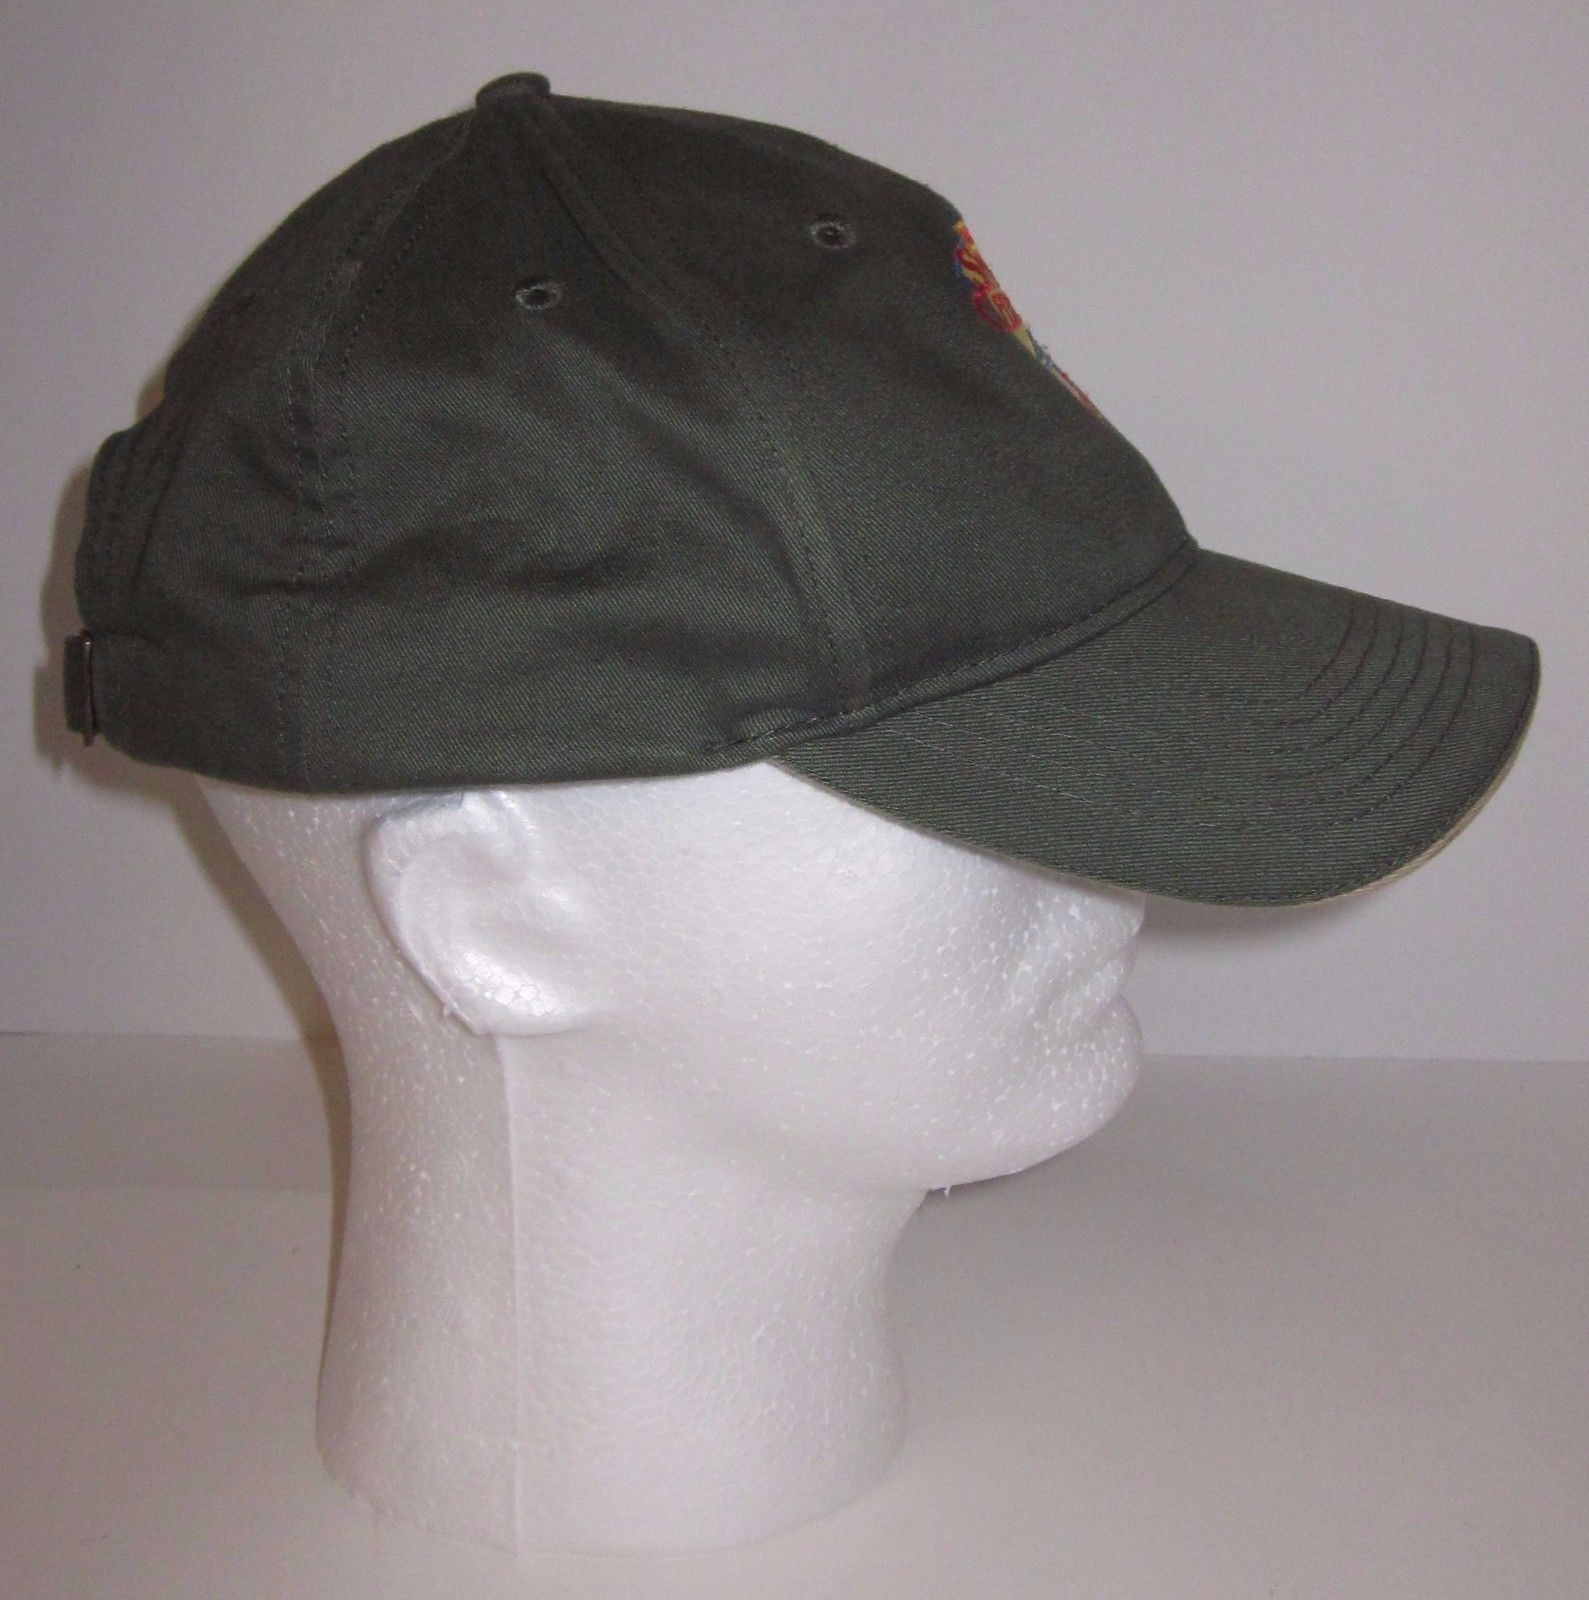 4137487eae4 Air Chilled Smart Chicken Employee Hat Cap - Organic - Olive Green - Buckle  Back